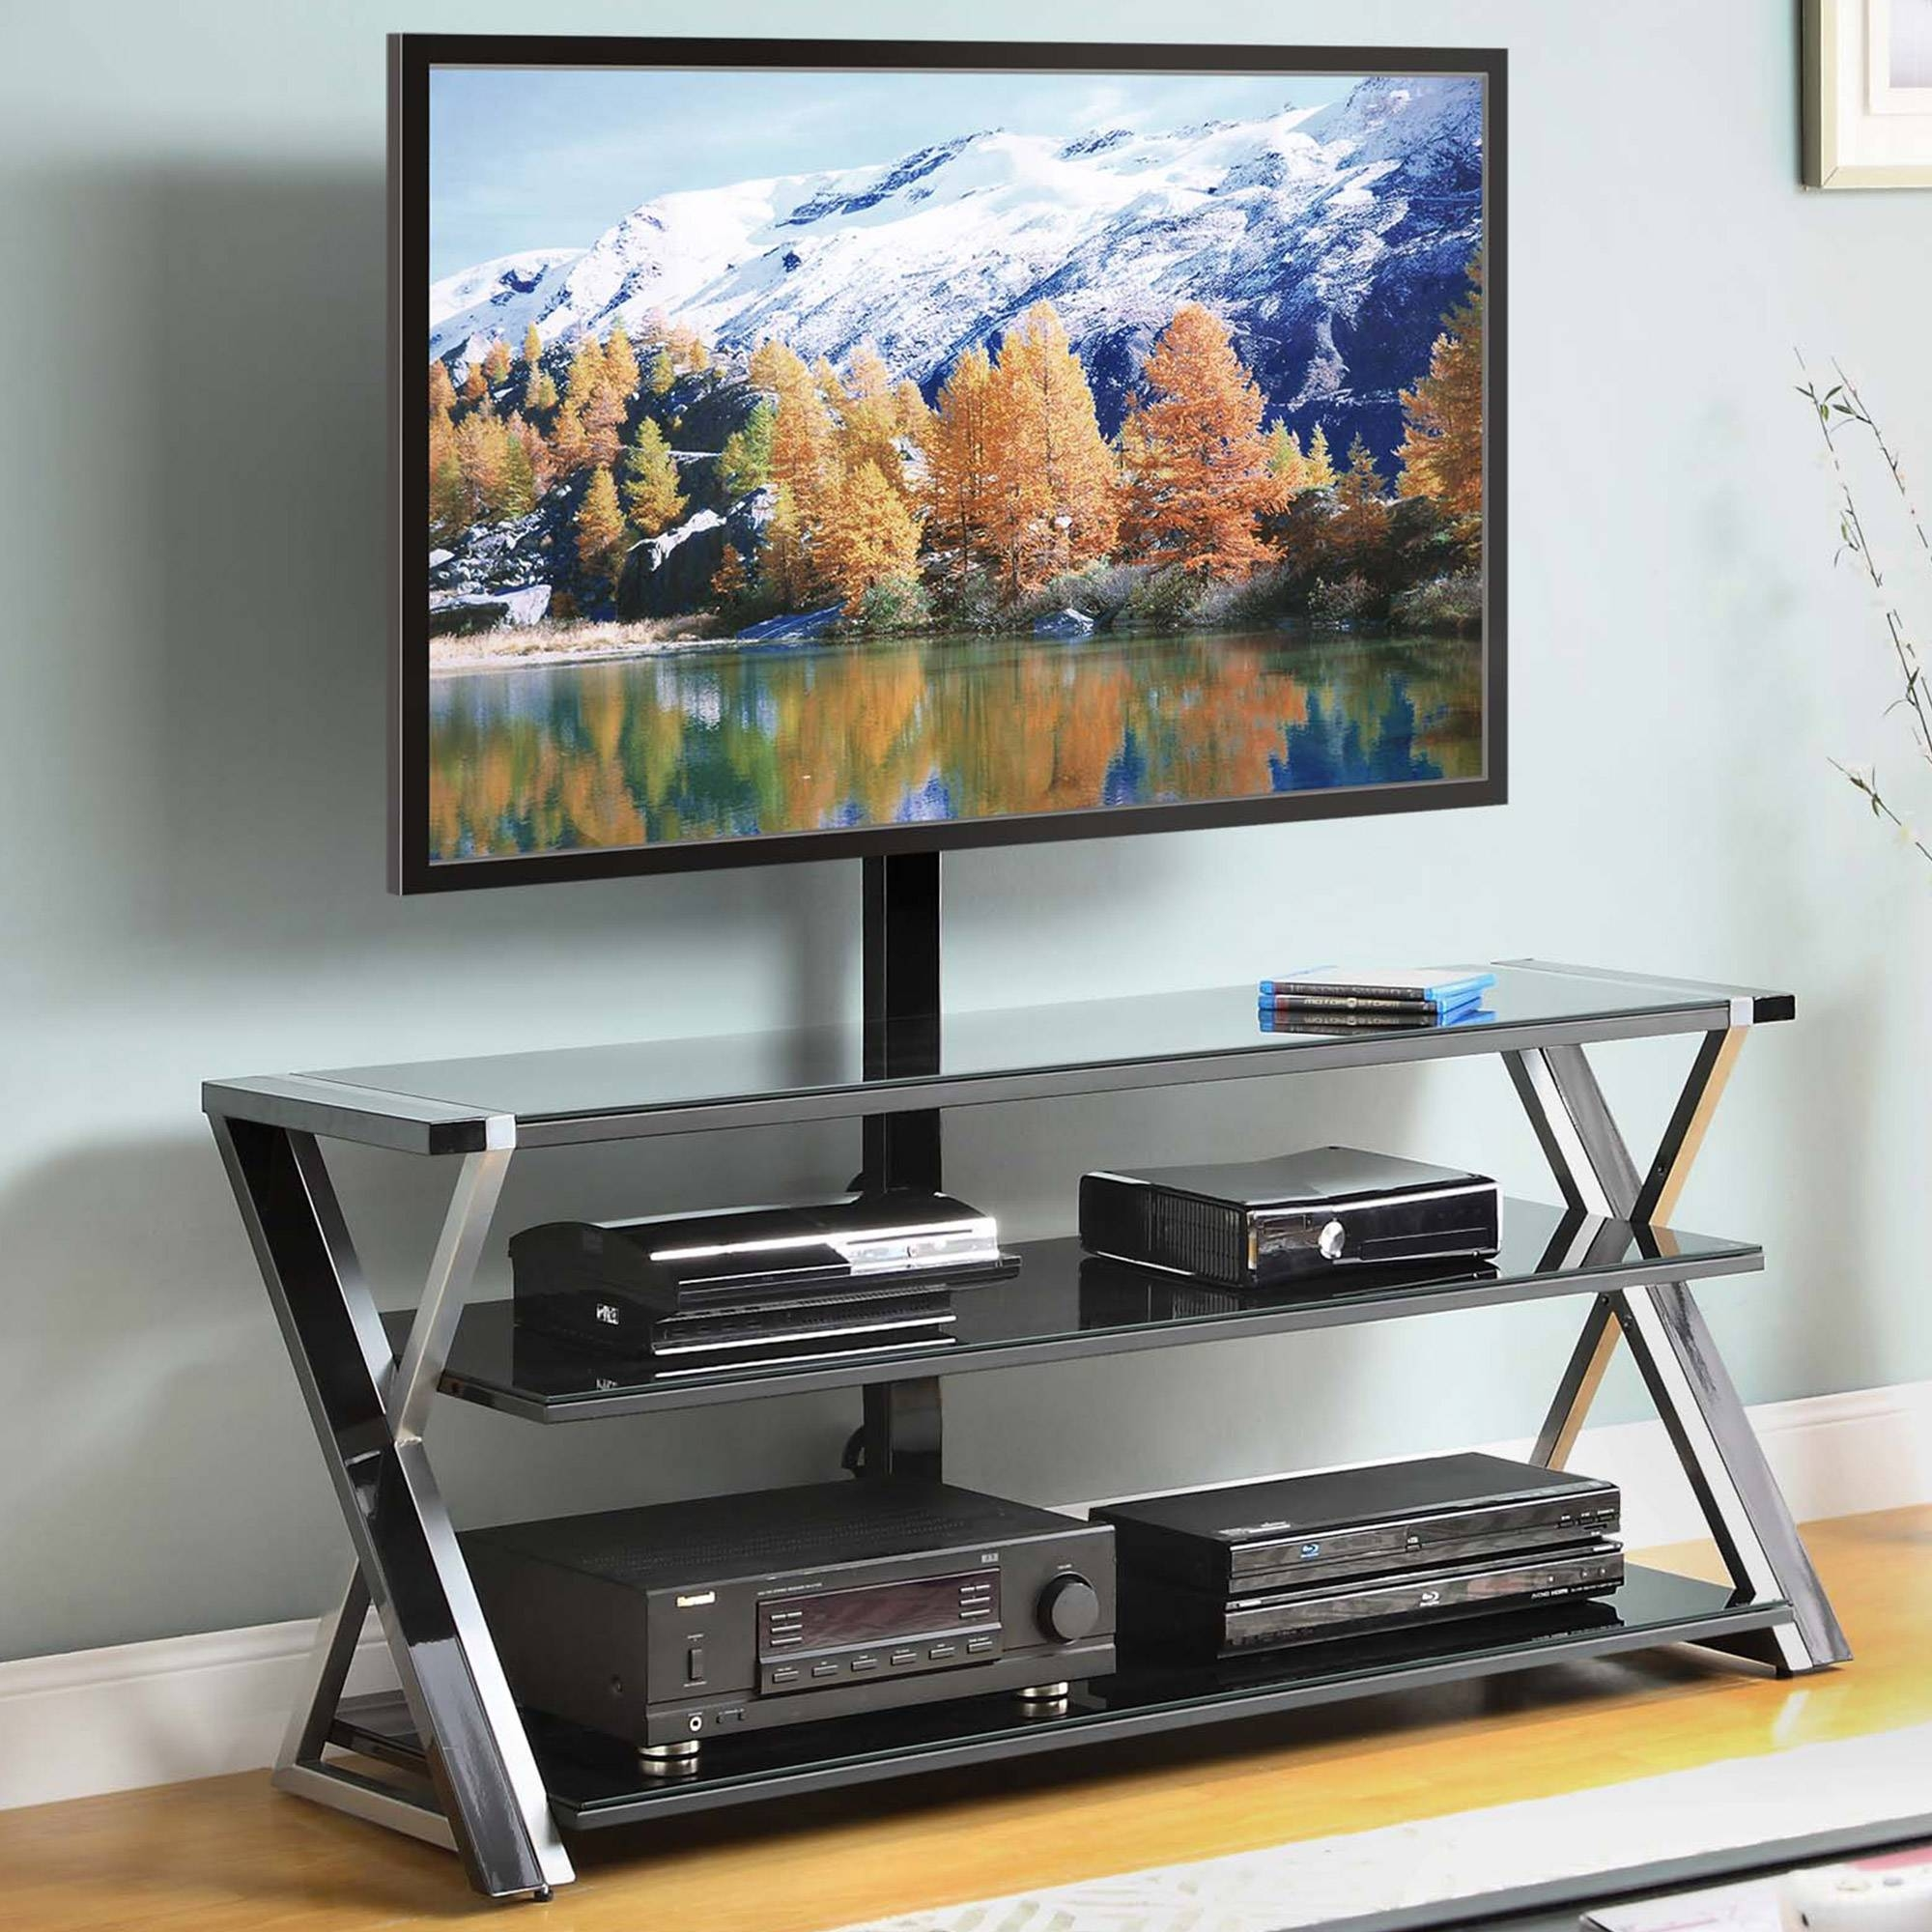 Tv Stands - Walmart with Upright Tv Stands (Image 14 of 15)